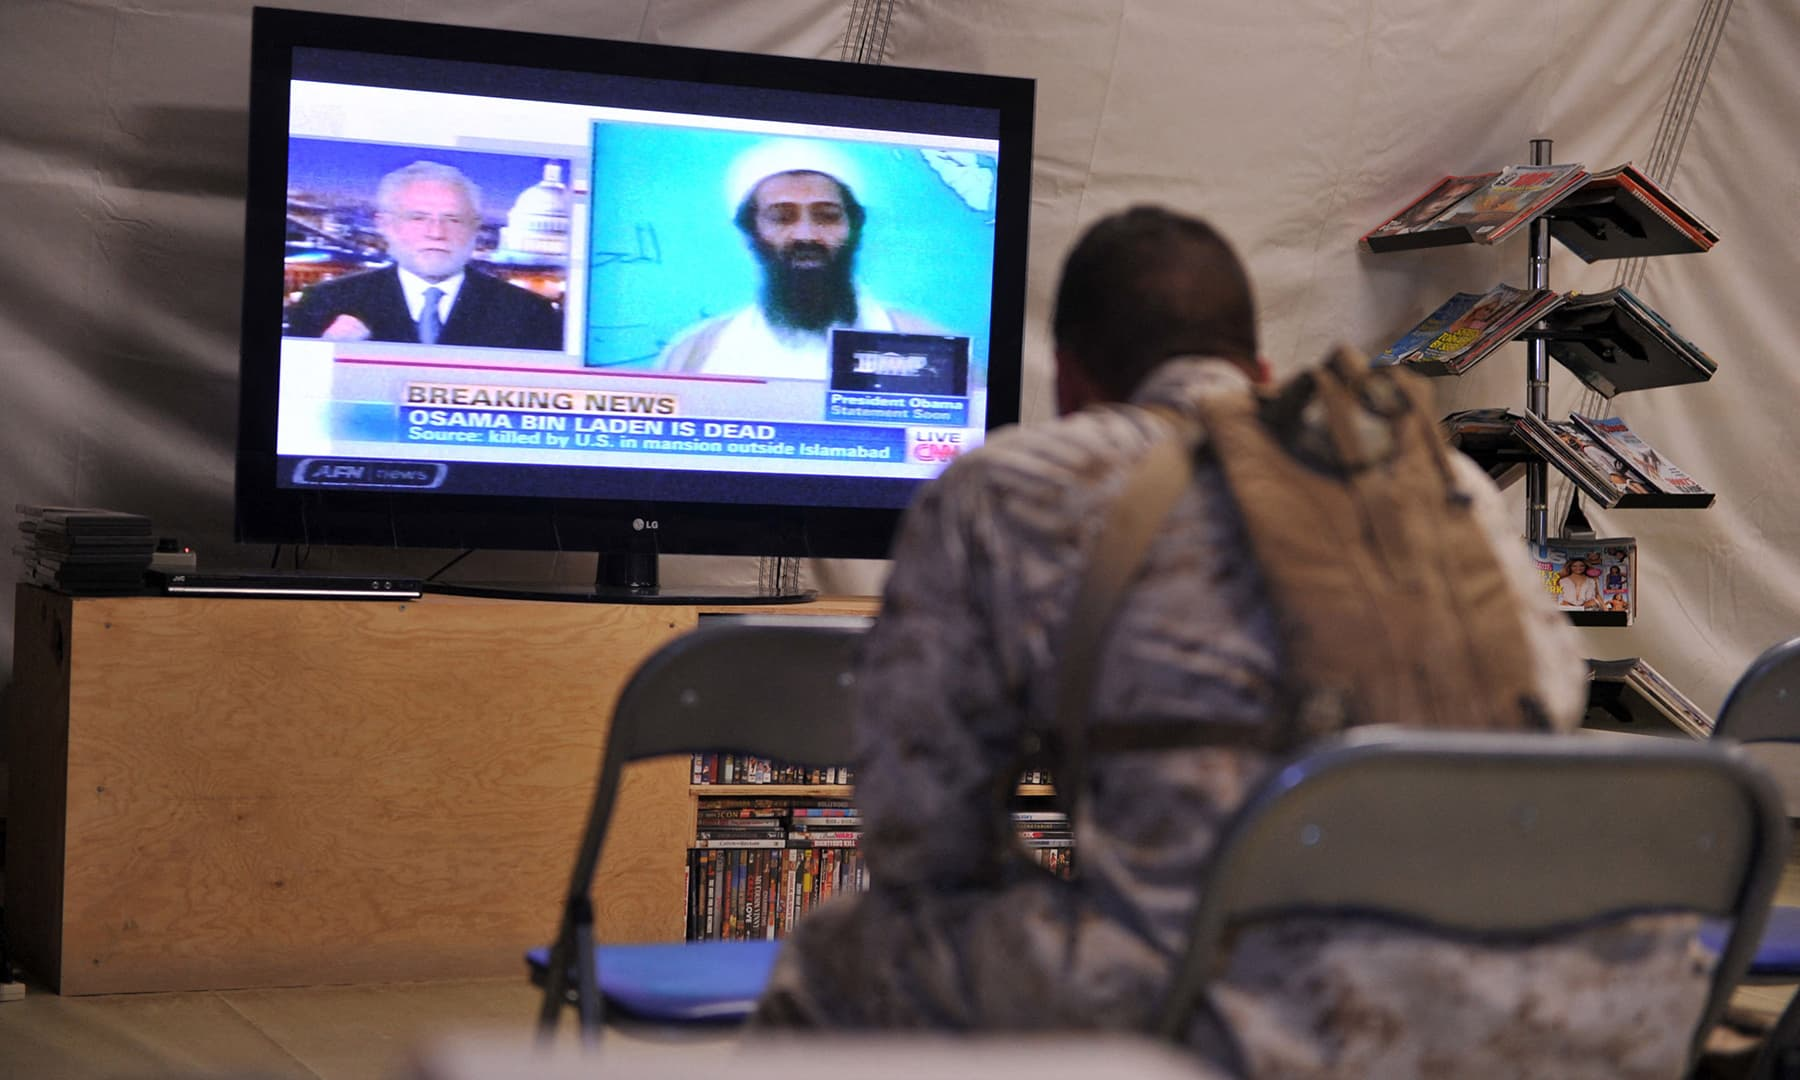 In this file photo taken on May 2, 2011, US Marines of Regiment Combat Team 1 watch TV announcing the death of Osama bin Laden, at Camp Dwyer in Helmand province. — AFP